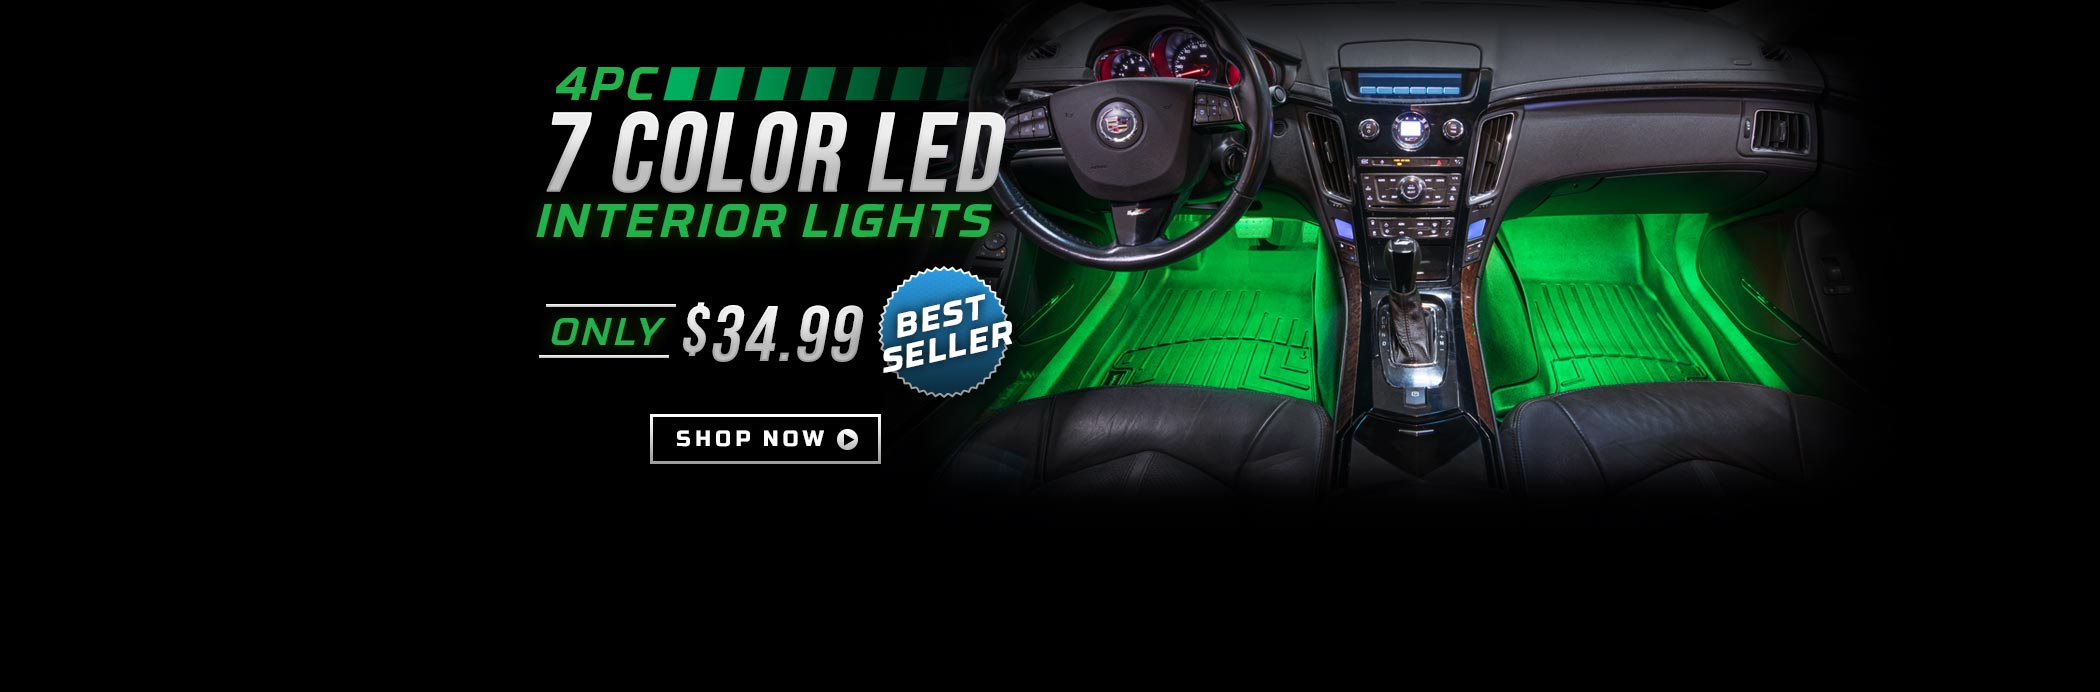 4pc 7 Color LED Interior Lights